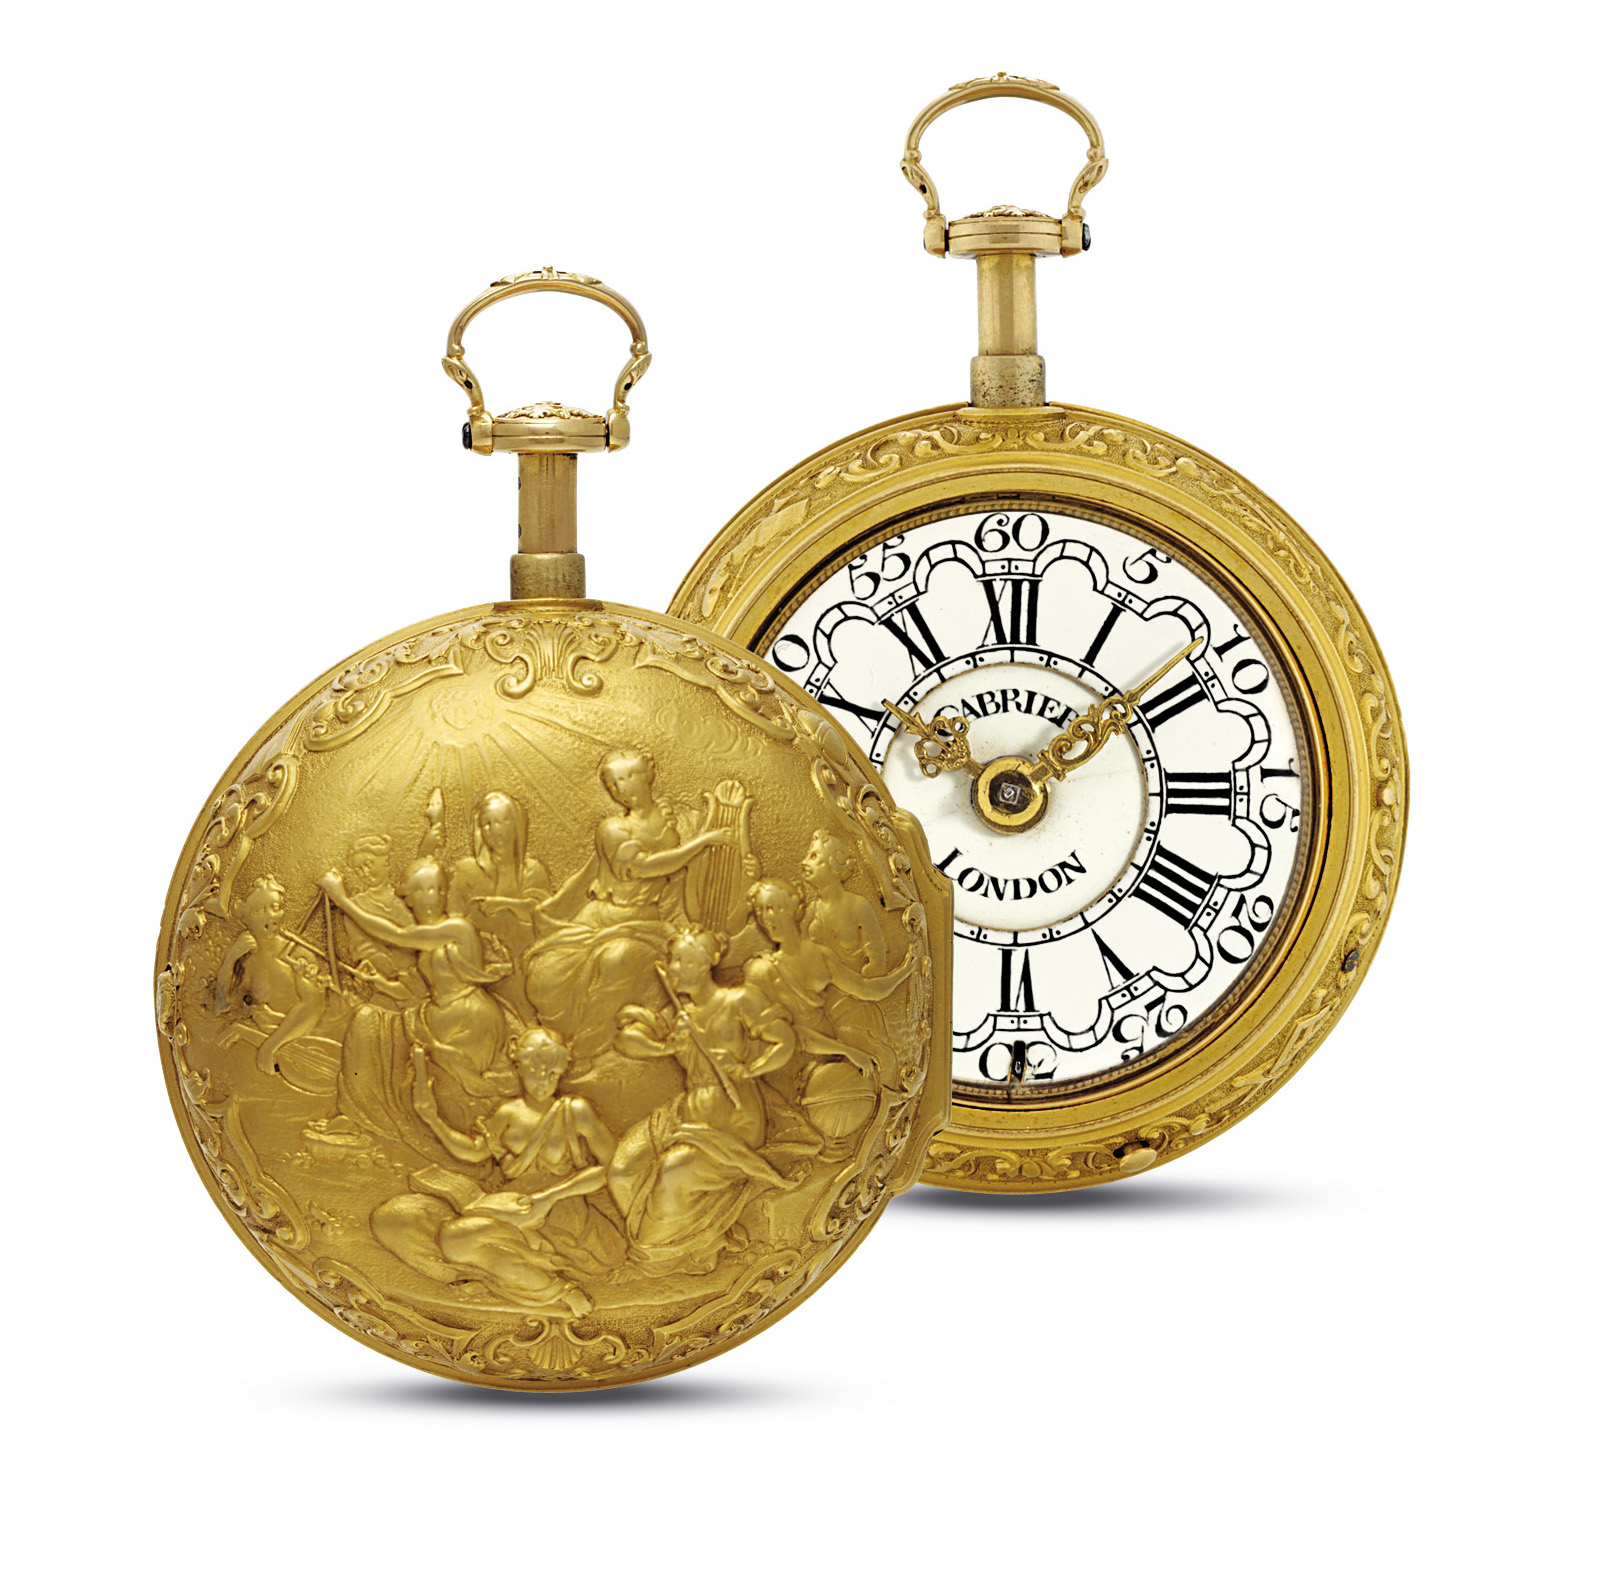 CABRIER. A VERY FINE AND RARE 18K GOLD QUARTER REPEATING A TOC PAIR CASE REPOUSSE WATCH